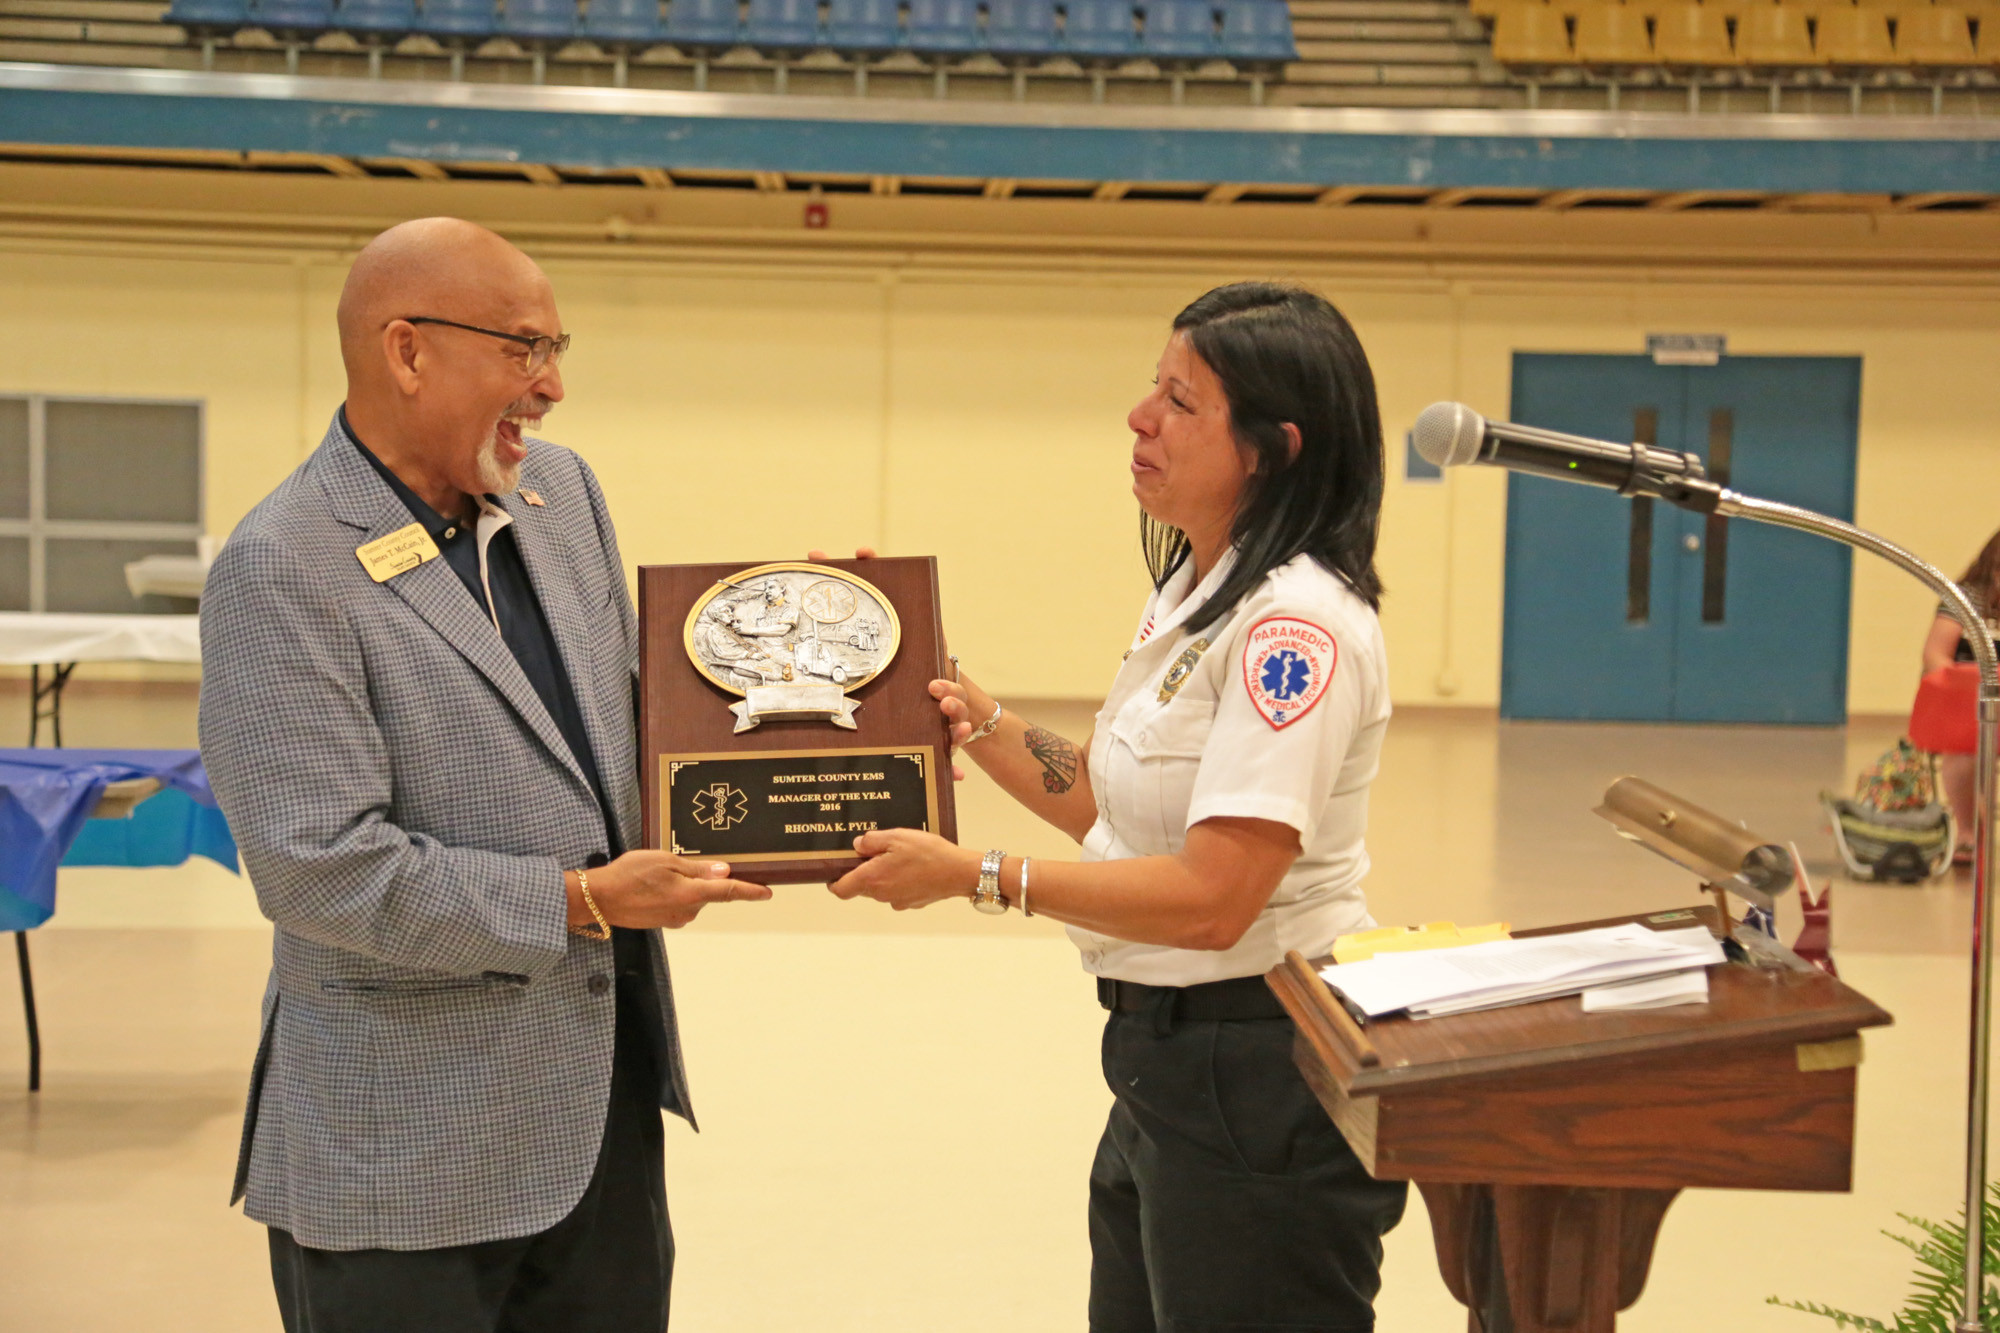 Sumter County Council Chairman James T. McCain Jr., left, hands a plaque to Ronda Pyle, named EMS Manager of the Year during the banquet.